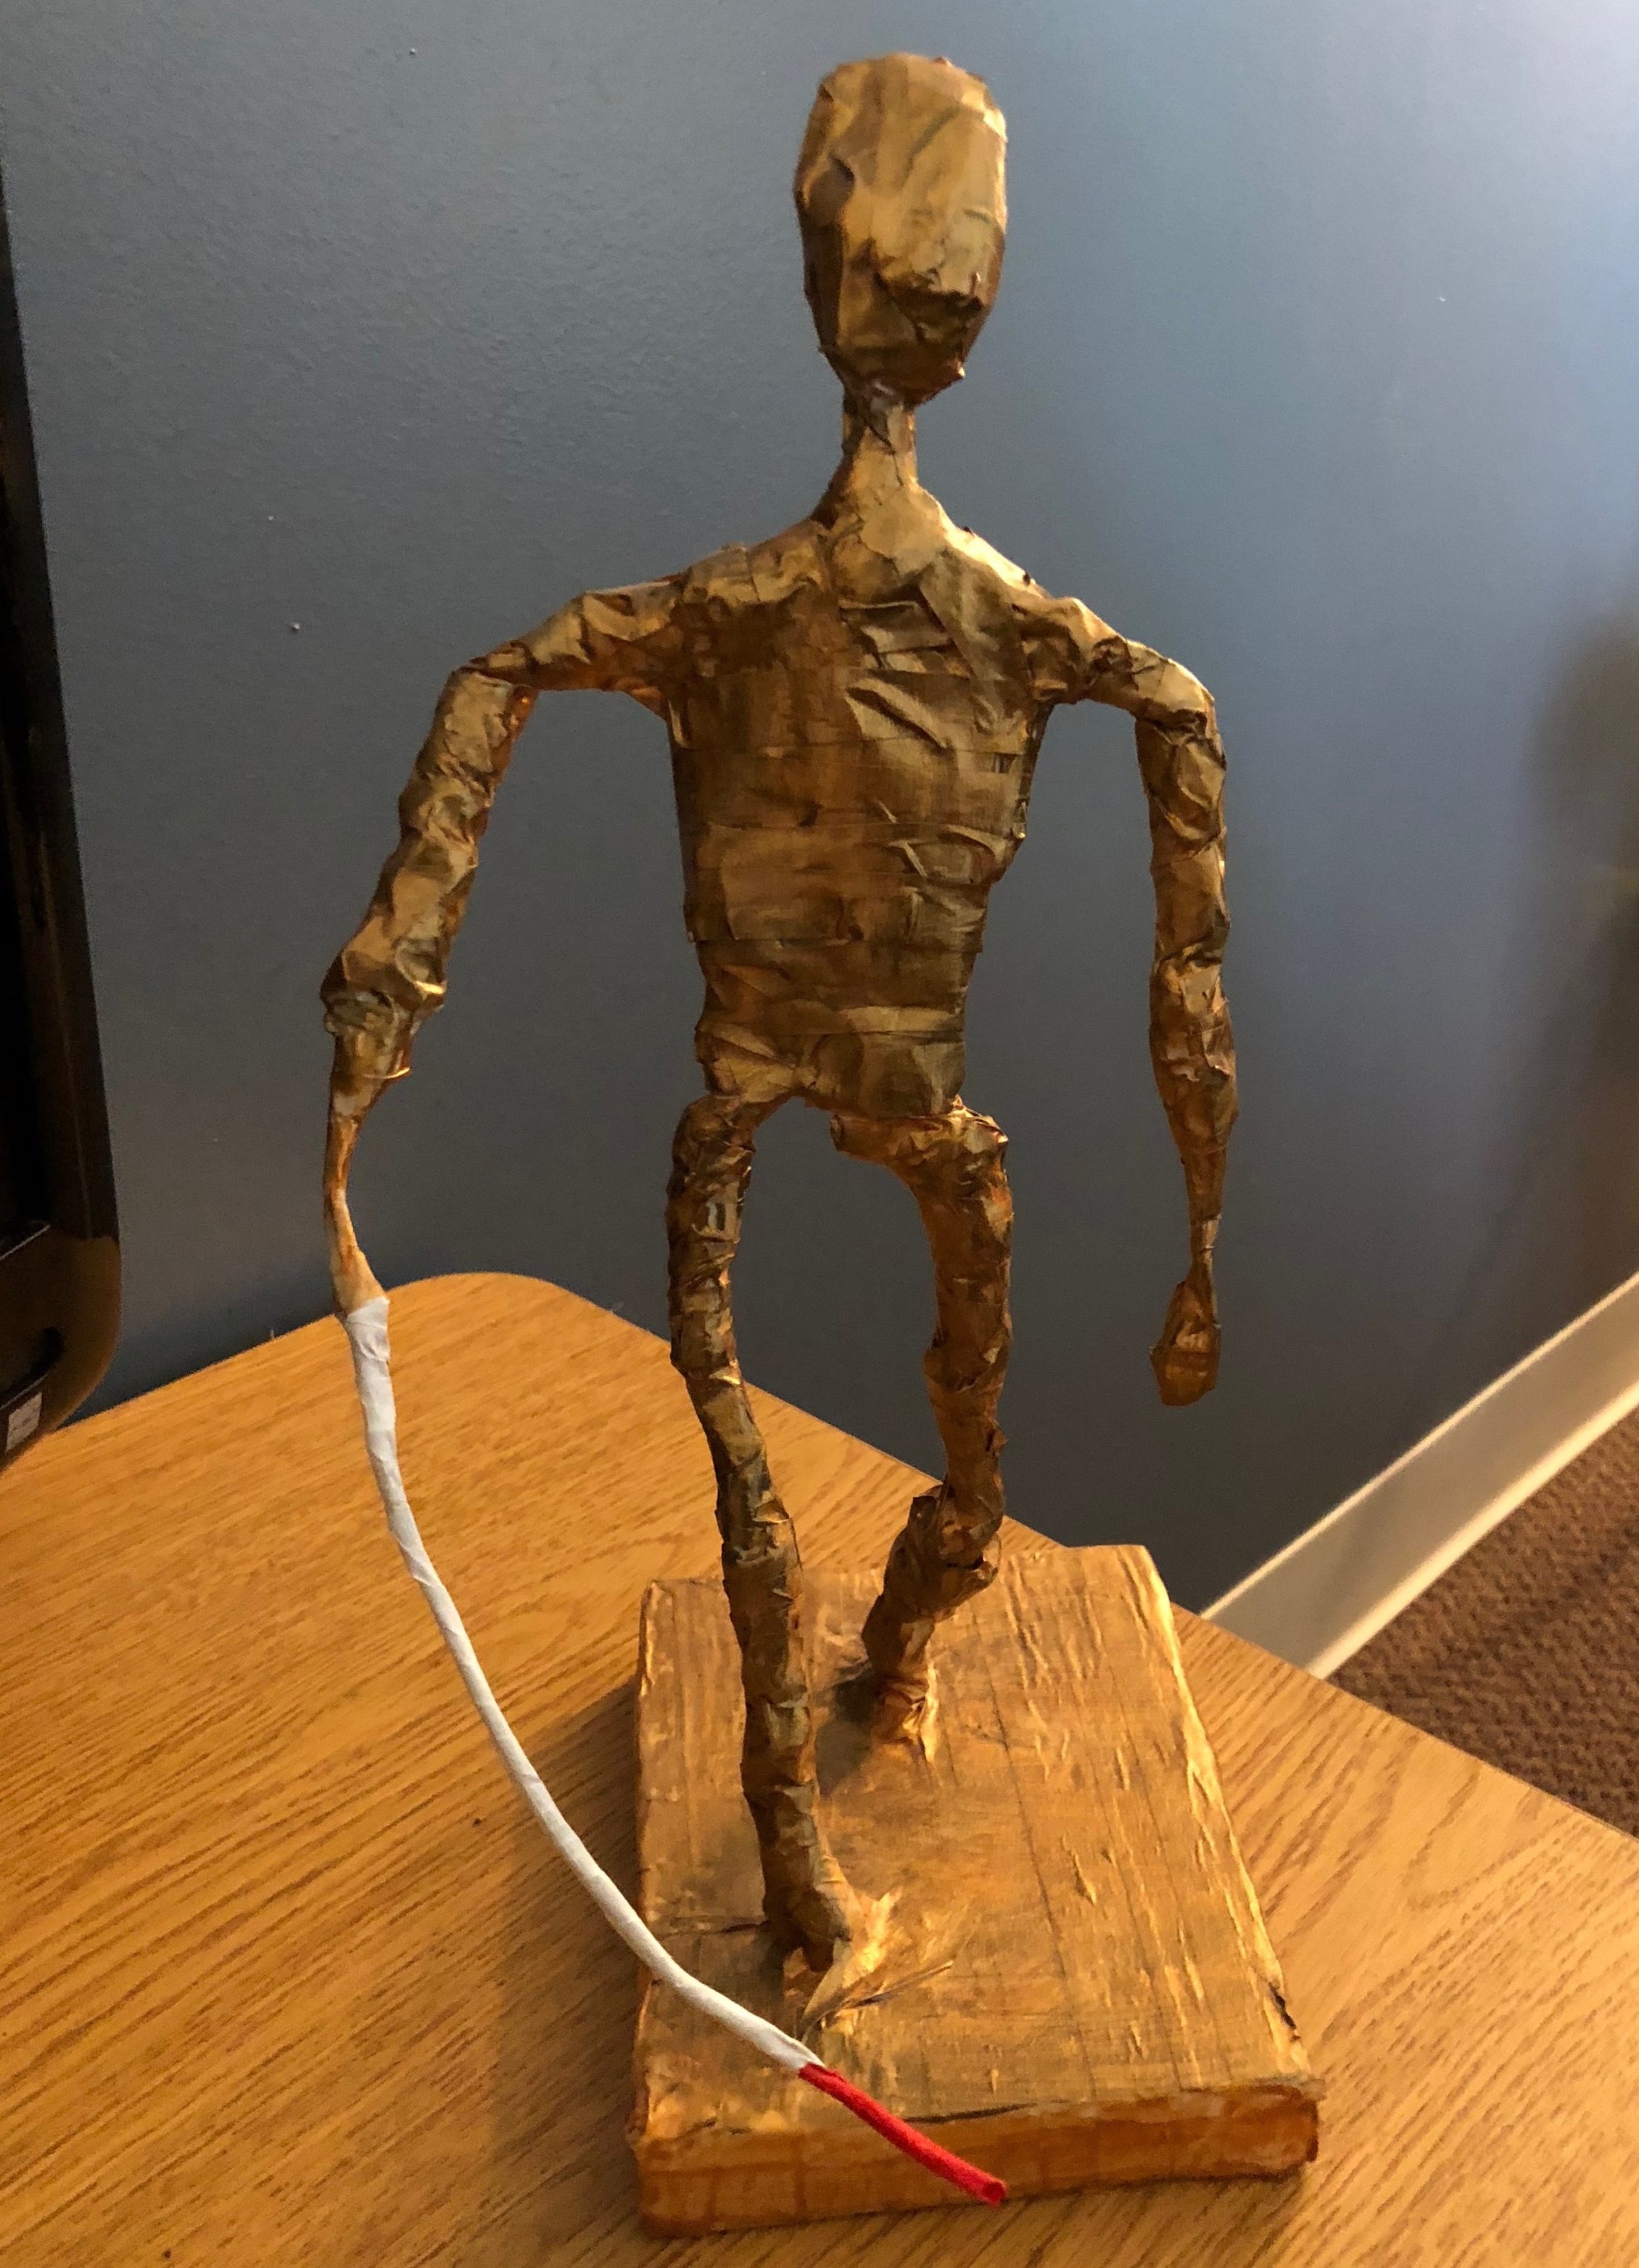 a thin paper mache sculpture painted in gold, using a cane.